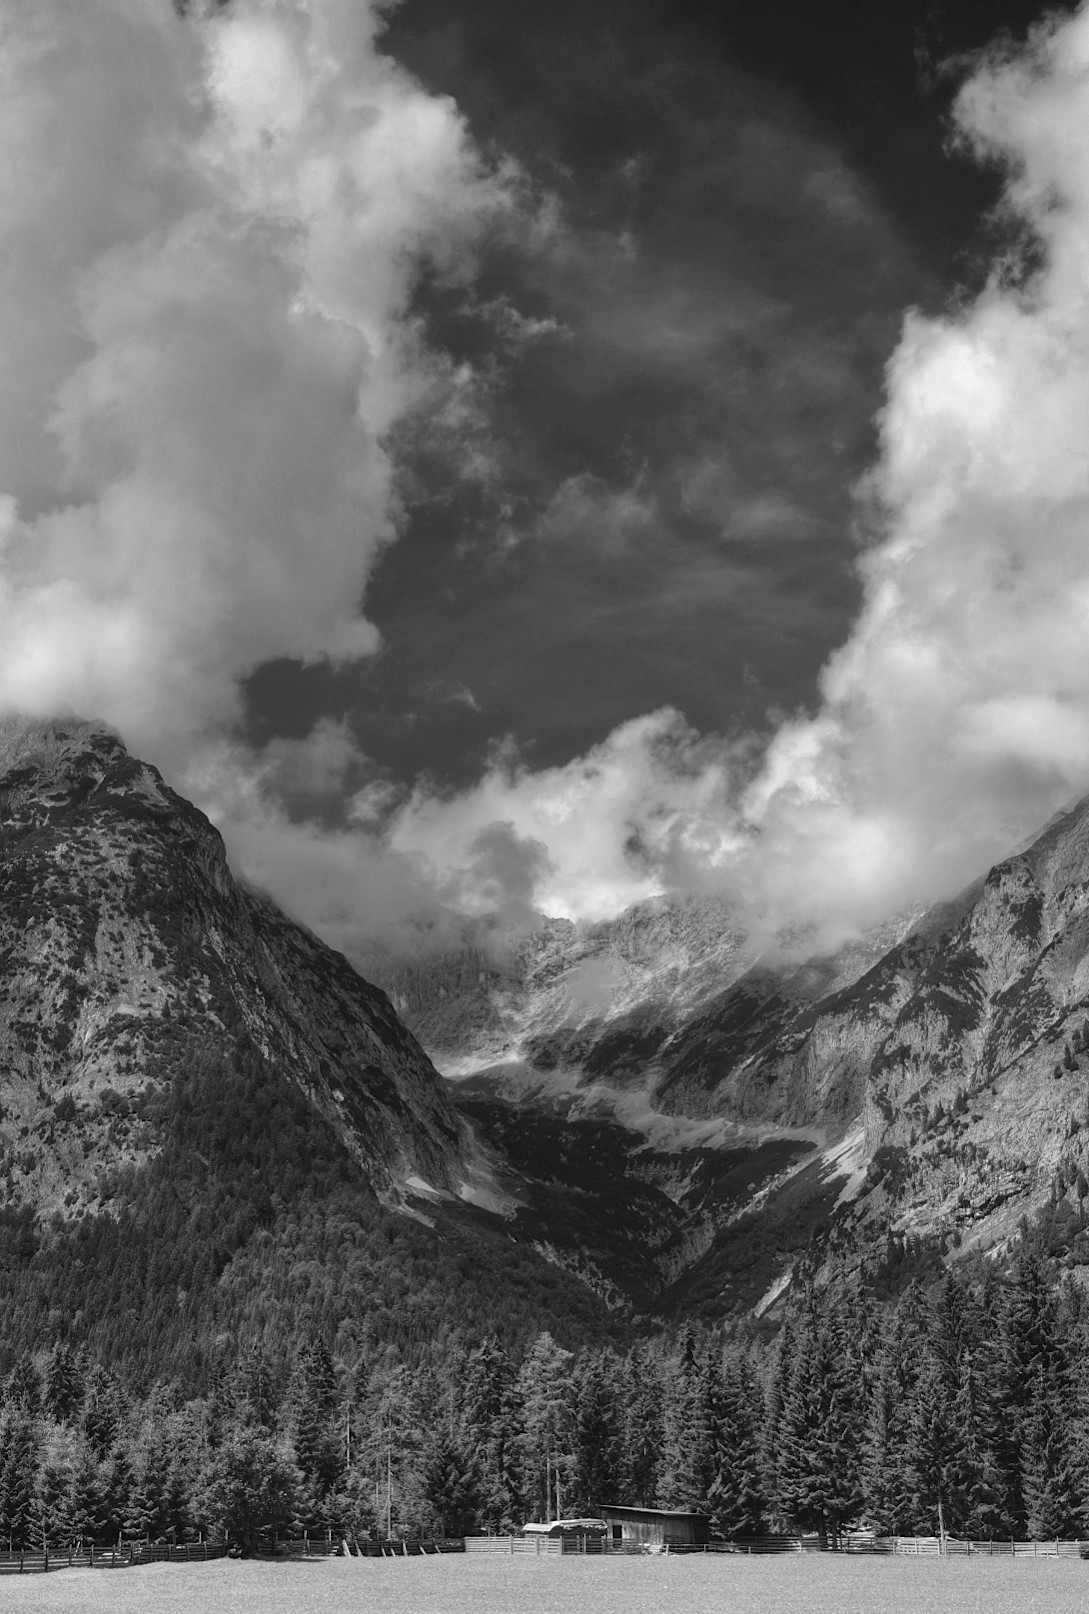 between Mittenwald and Seefeld, Austria